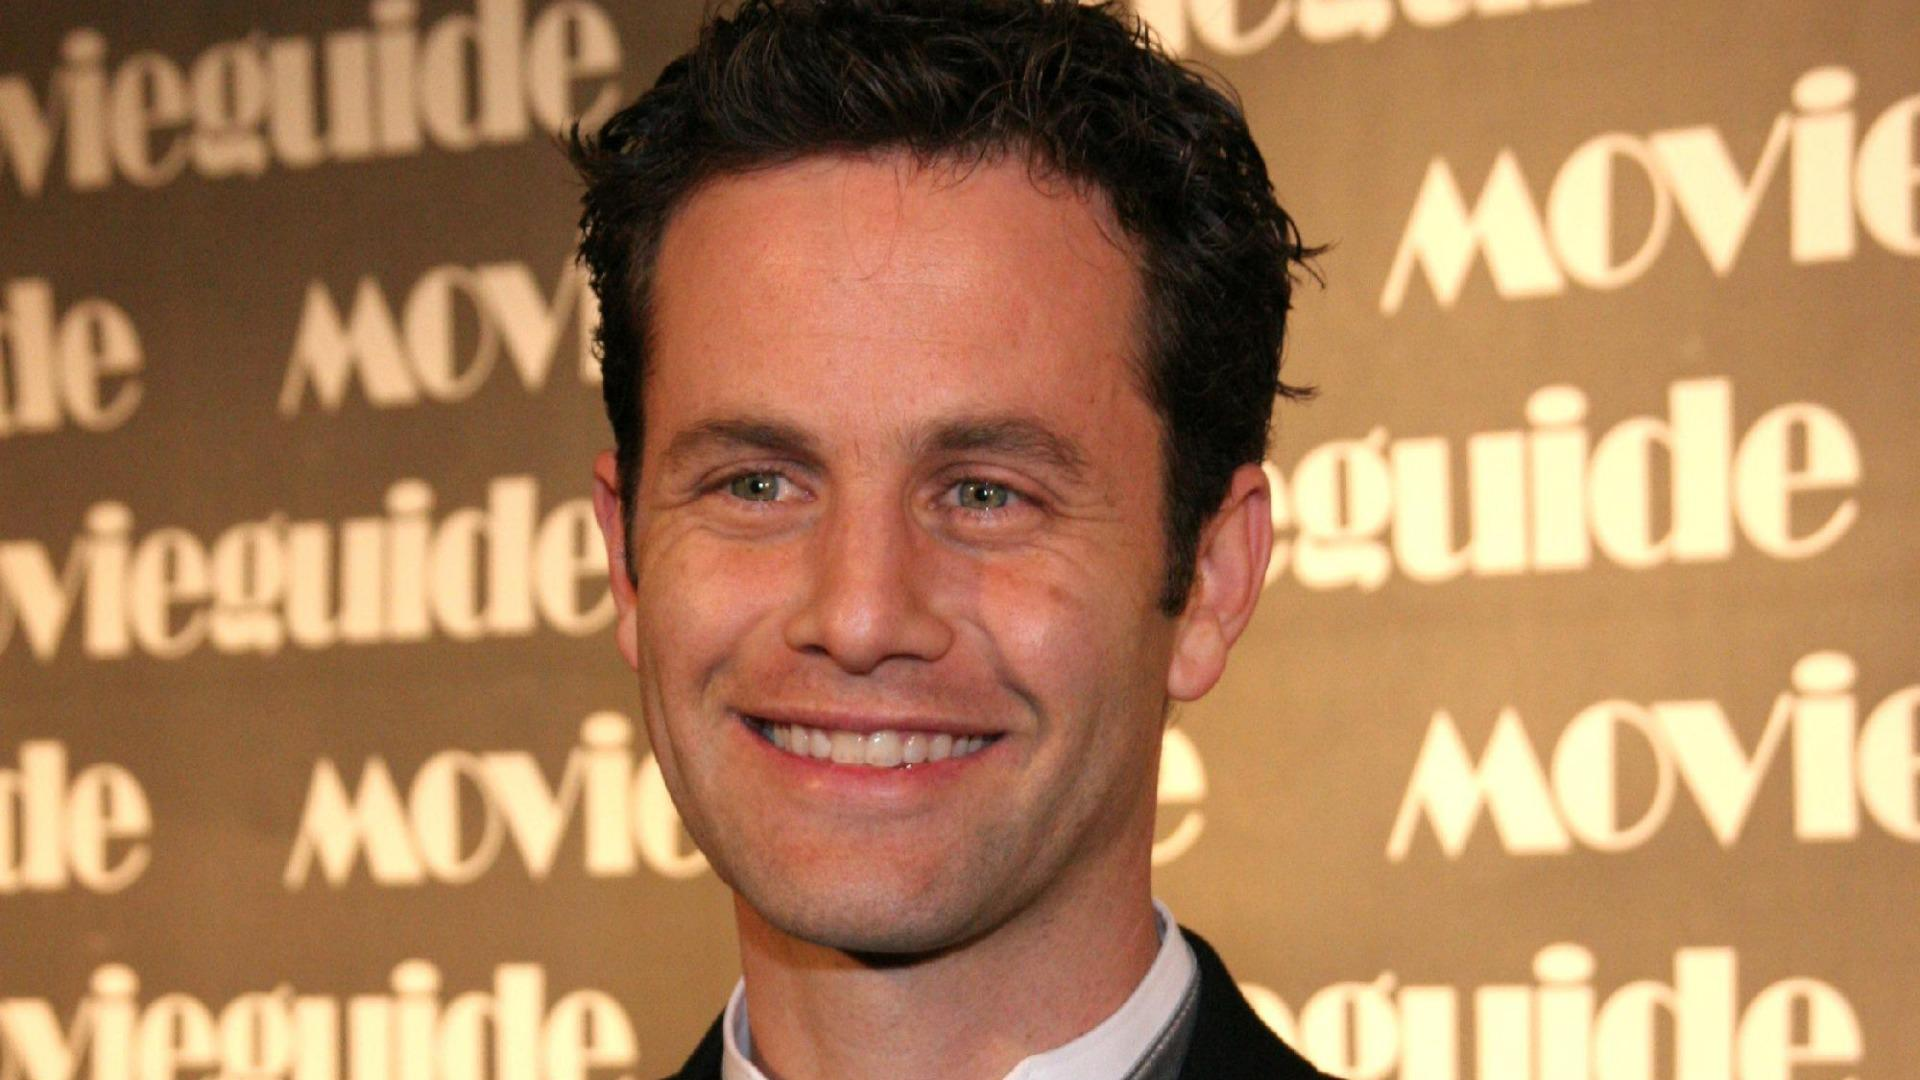 All the misogynistic comments Kirk Cameron has ever made – SheKnows